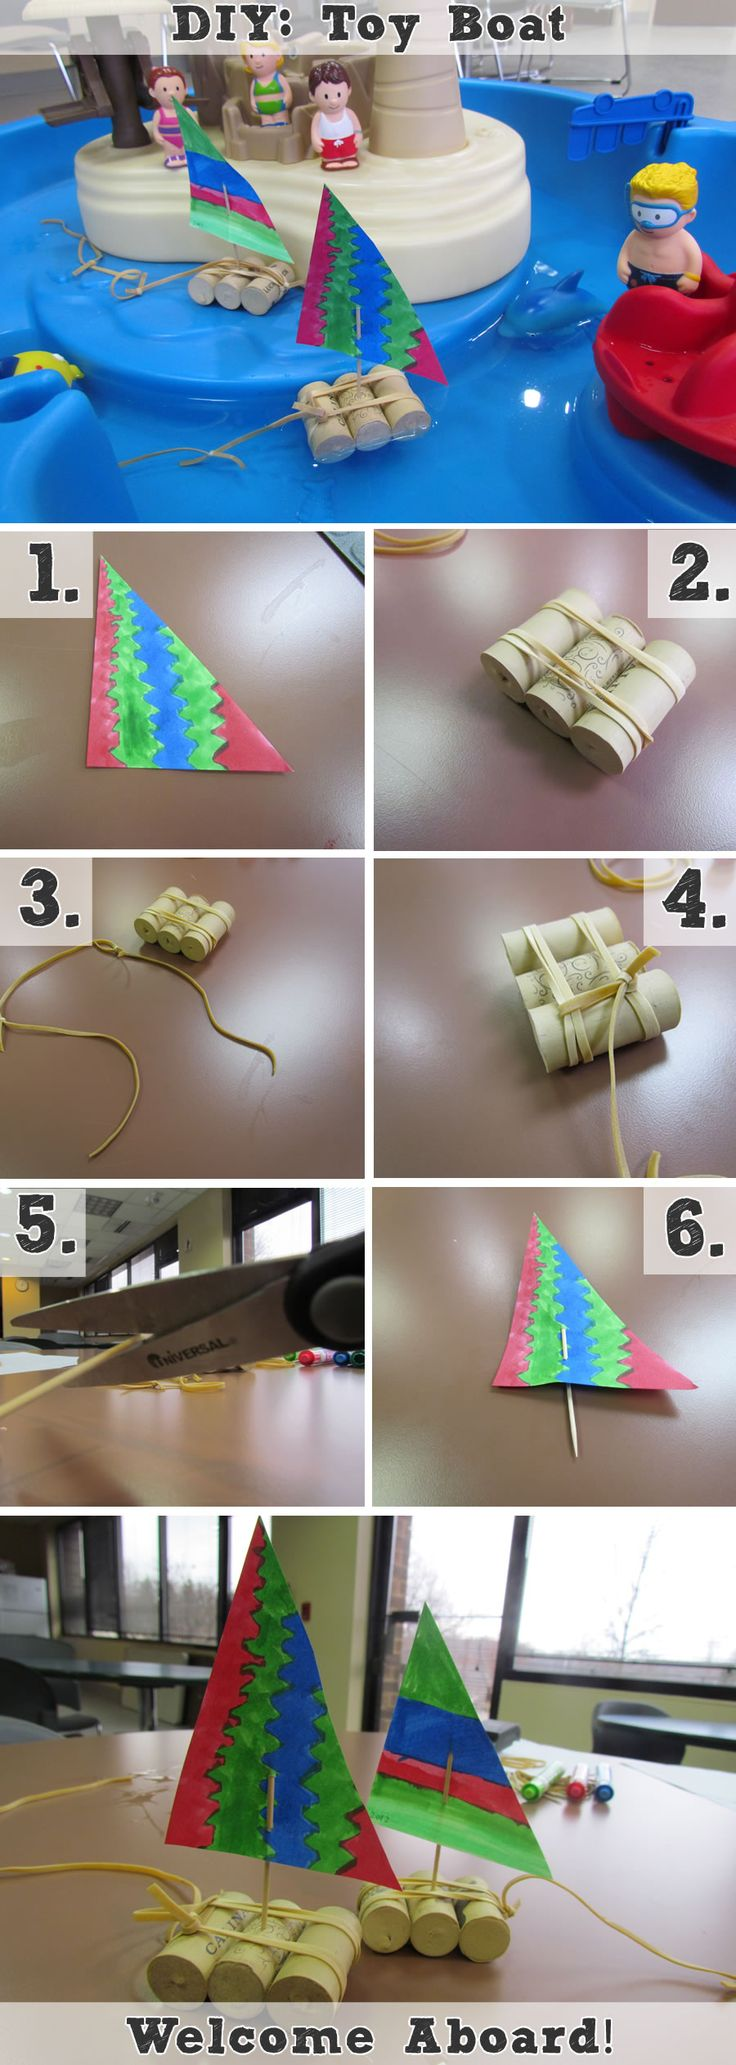 See how easy it is to make a DIY floating boat toy. Get creative with a colorful sail.